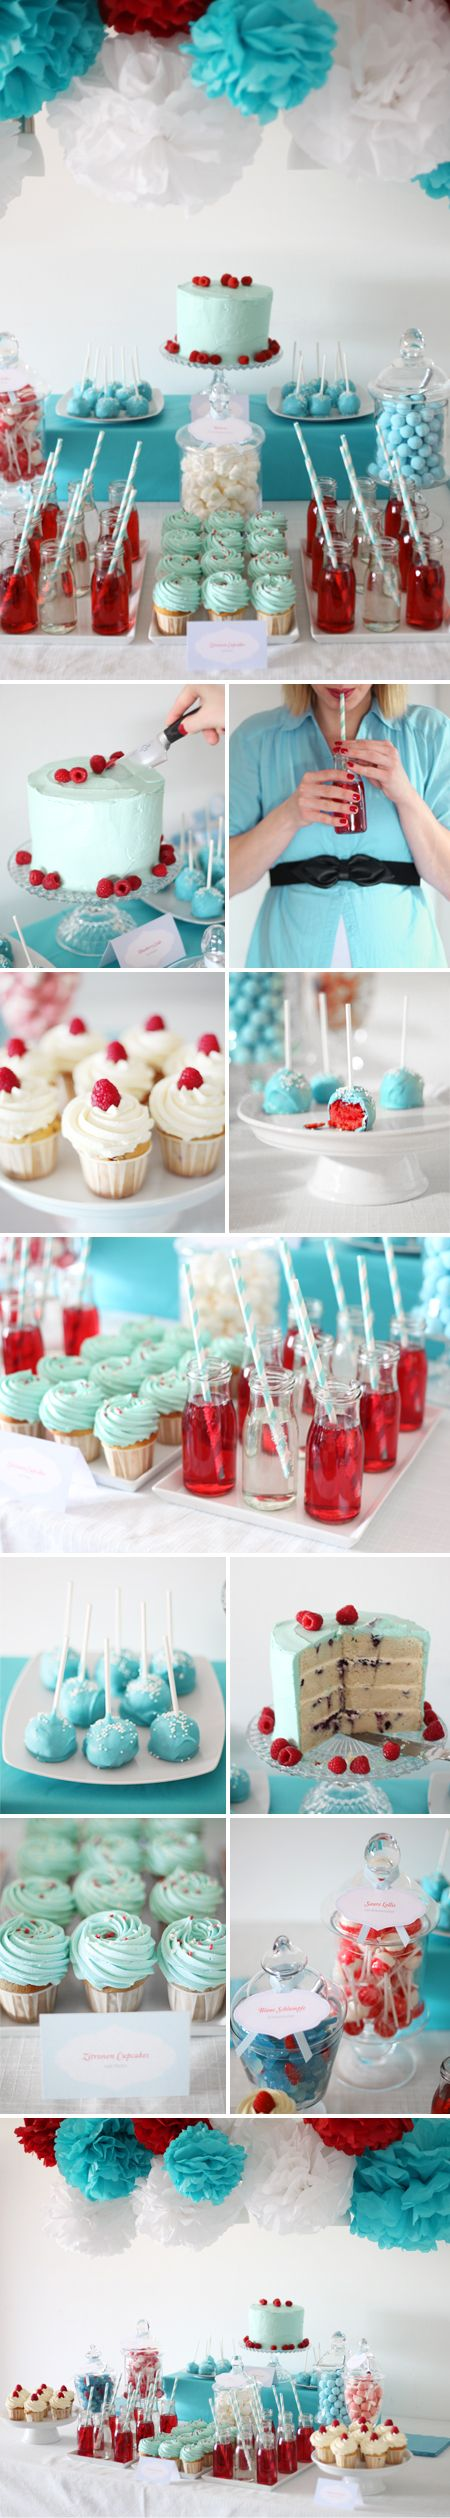 Babyshower_Babyparty_CandyBuffet_RedBlue by http://www.blog.zuckermonarchie.de